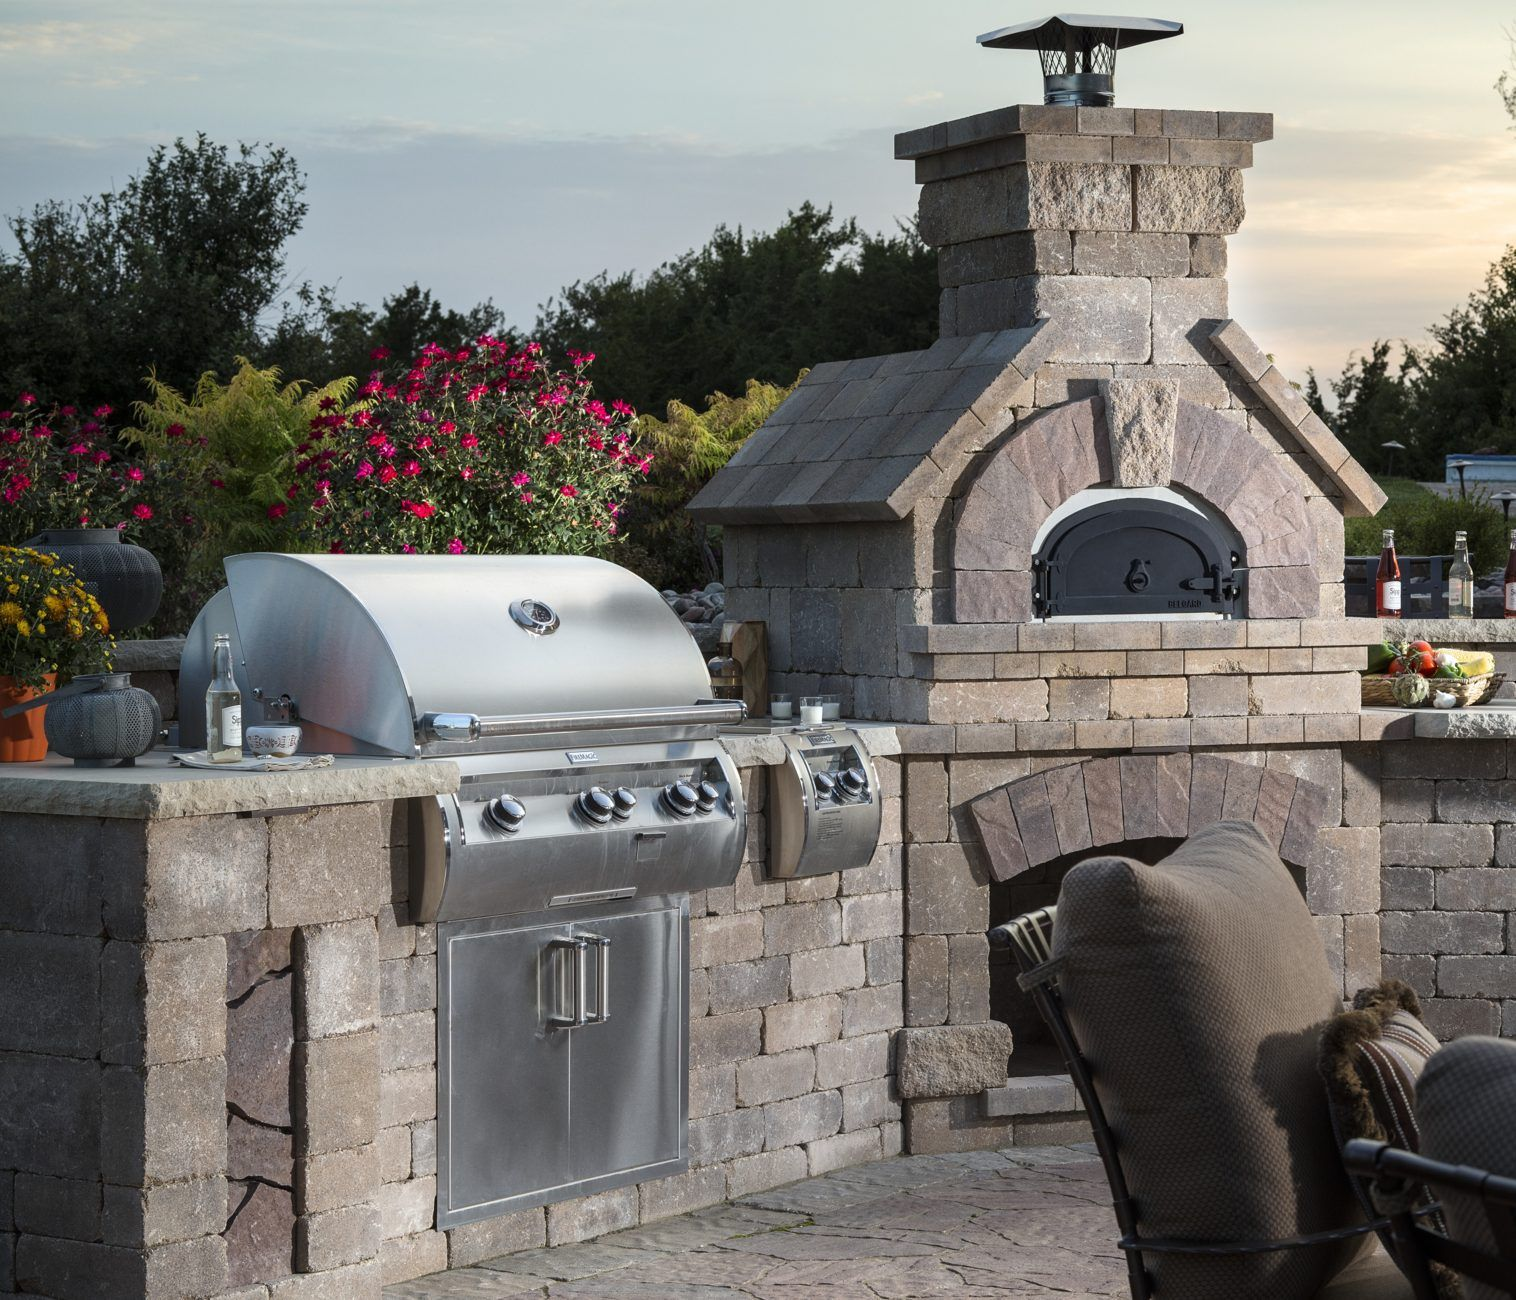 Restaurant Quality Food Made In The Comfort Of Your Own Backyard Outdoor Barbeque Outdoor Grill Island Outdoor Kitchen